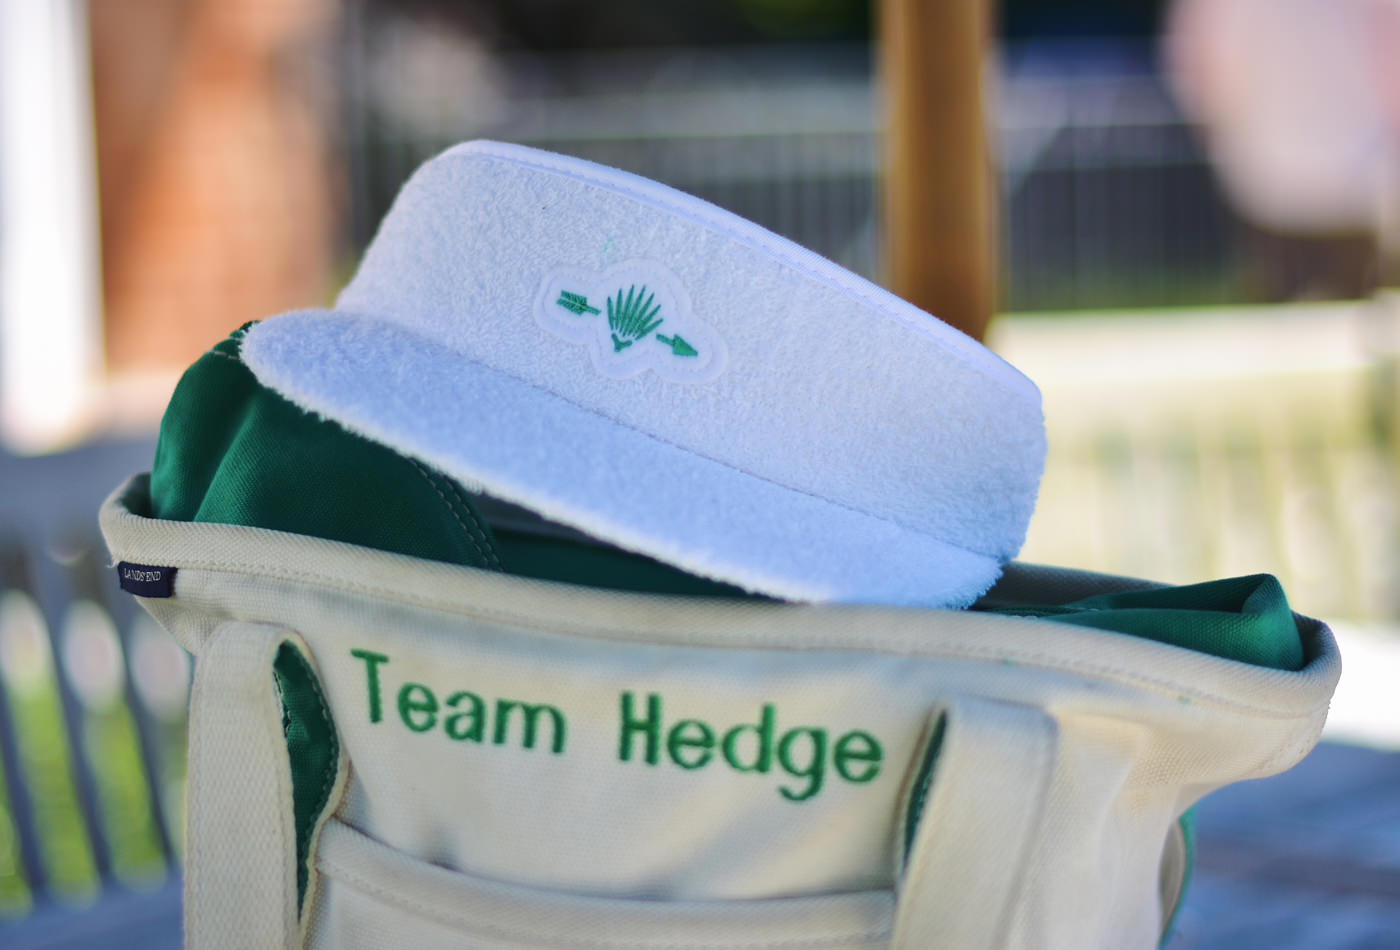 hedge-ny-golf-tennis-branding-hedgehog-icon-vacaliebres-hedgenyc-elegant